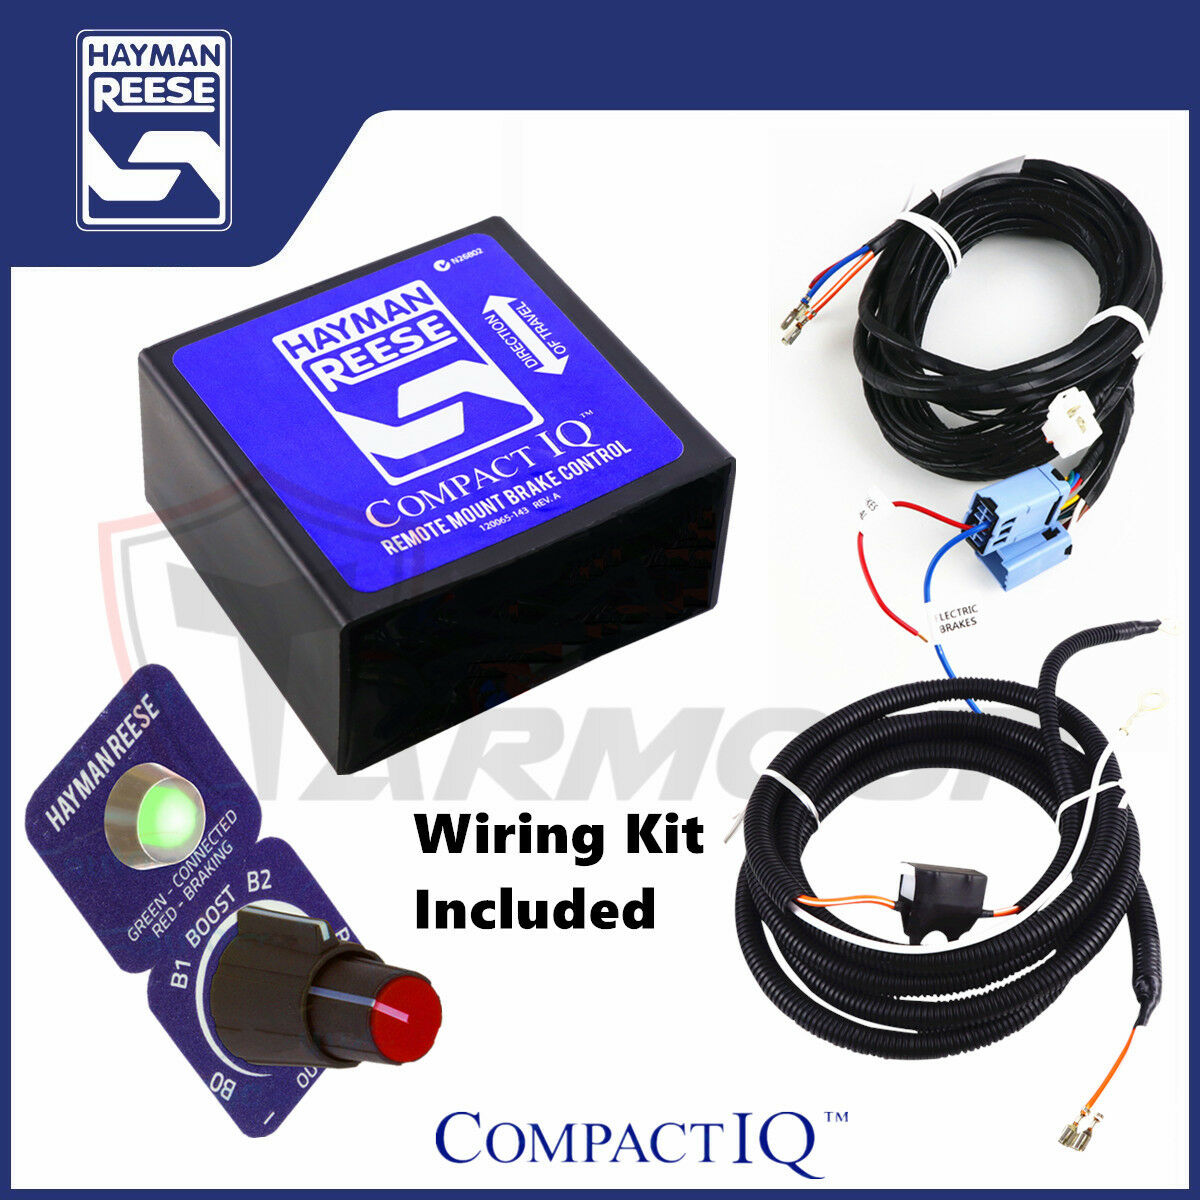 Hayman Reese Electric Brake Controller Compact Iq Wiring Harness Brakes Wire Loom 1 Of 7only 0 Available